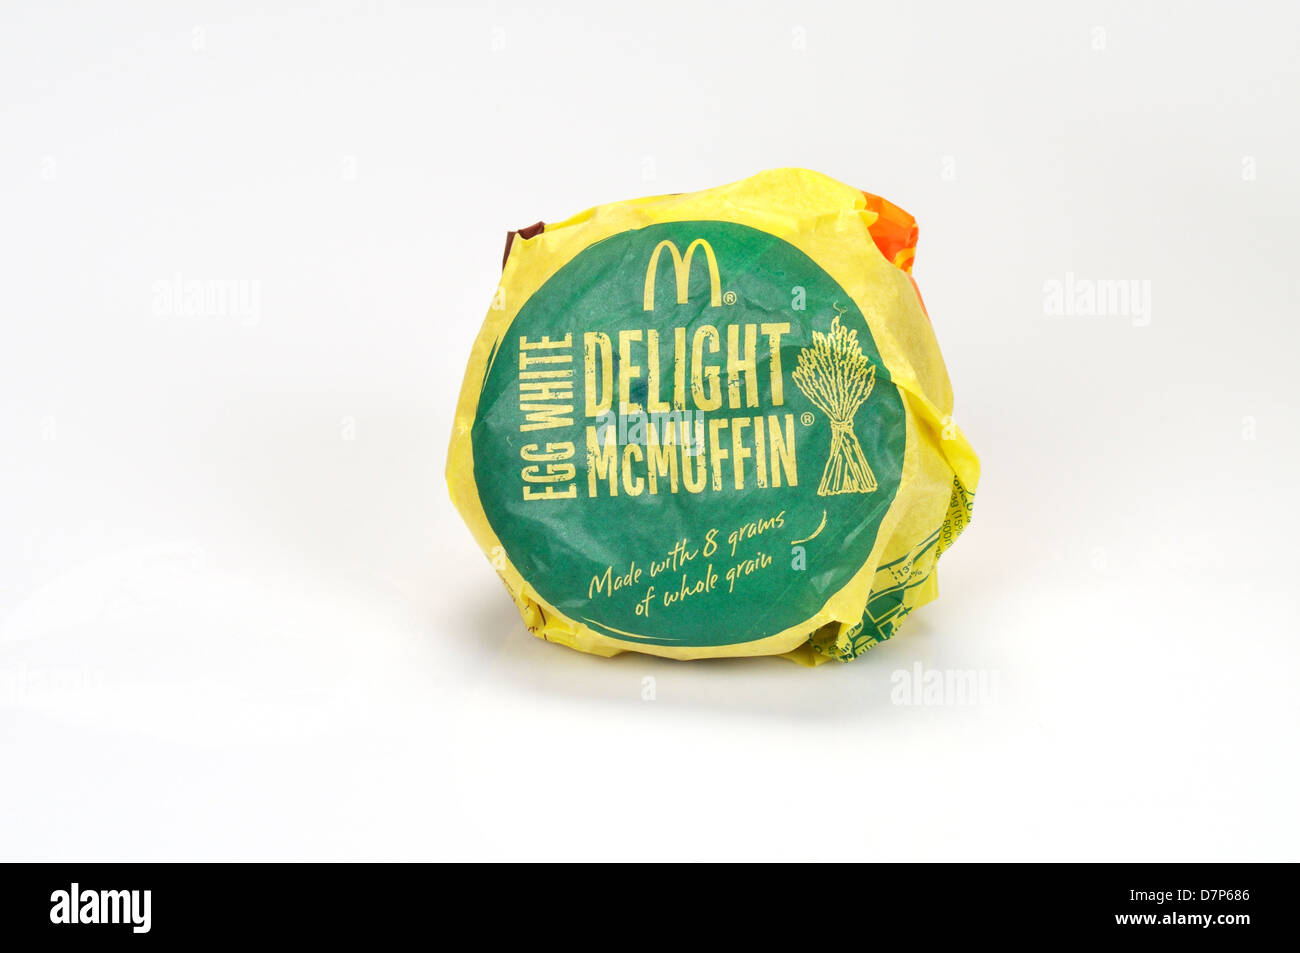 McDonald's egg white delight mcmuffin with canadian bacon in wrapper on white background, cutout. USA - Stock Image